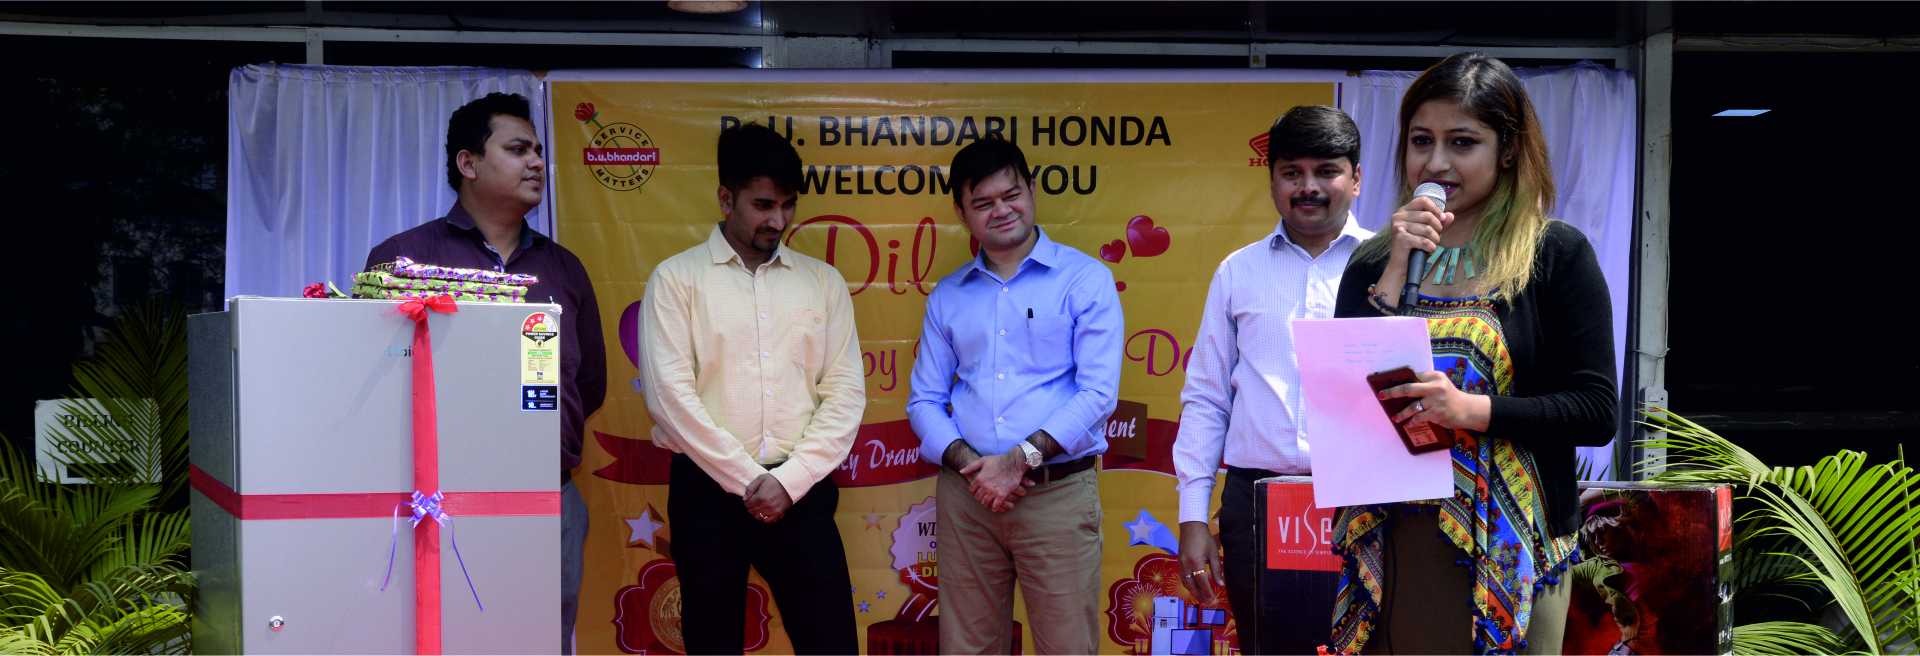 B.U.bhandari - lucky draw winner